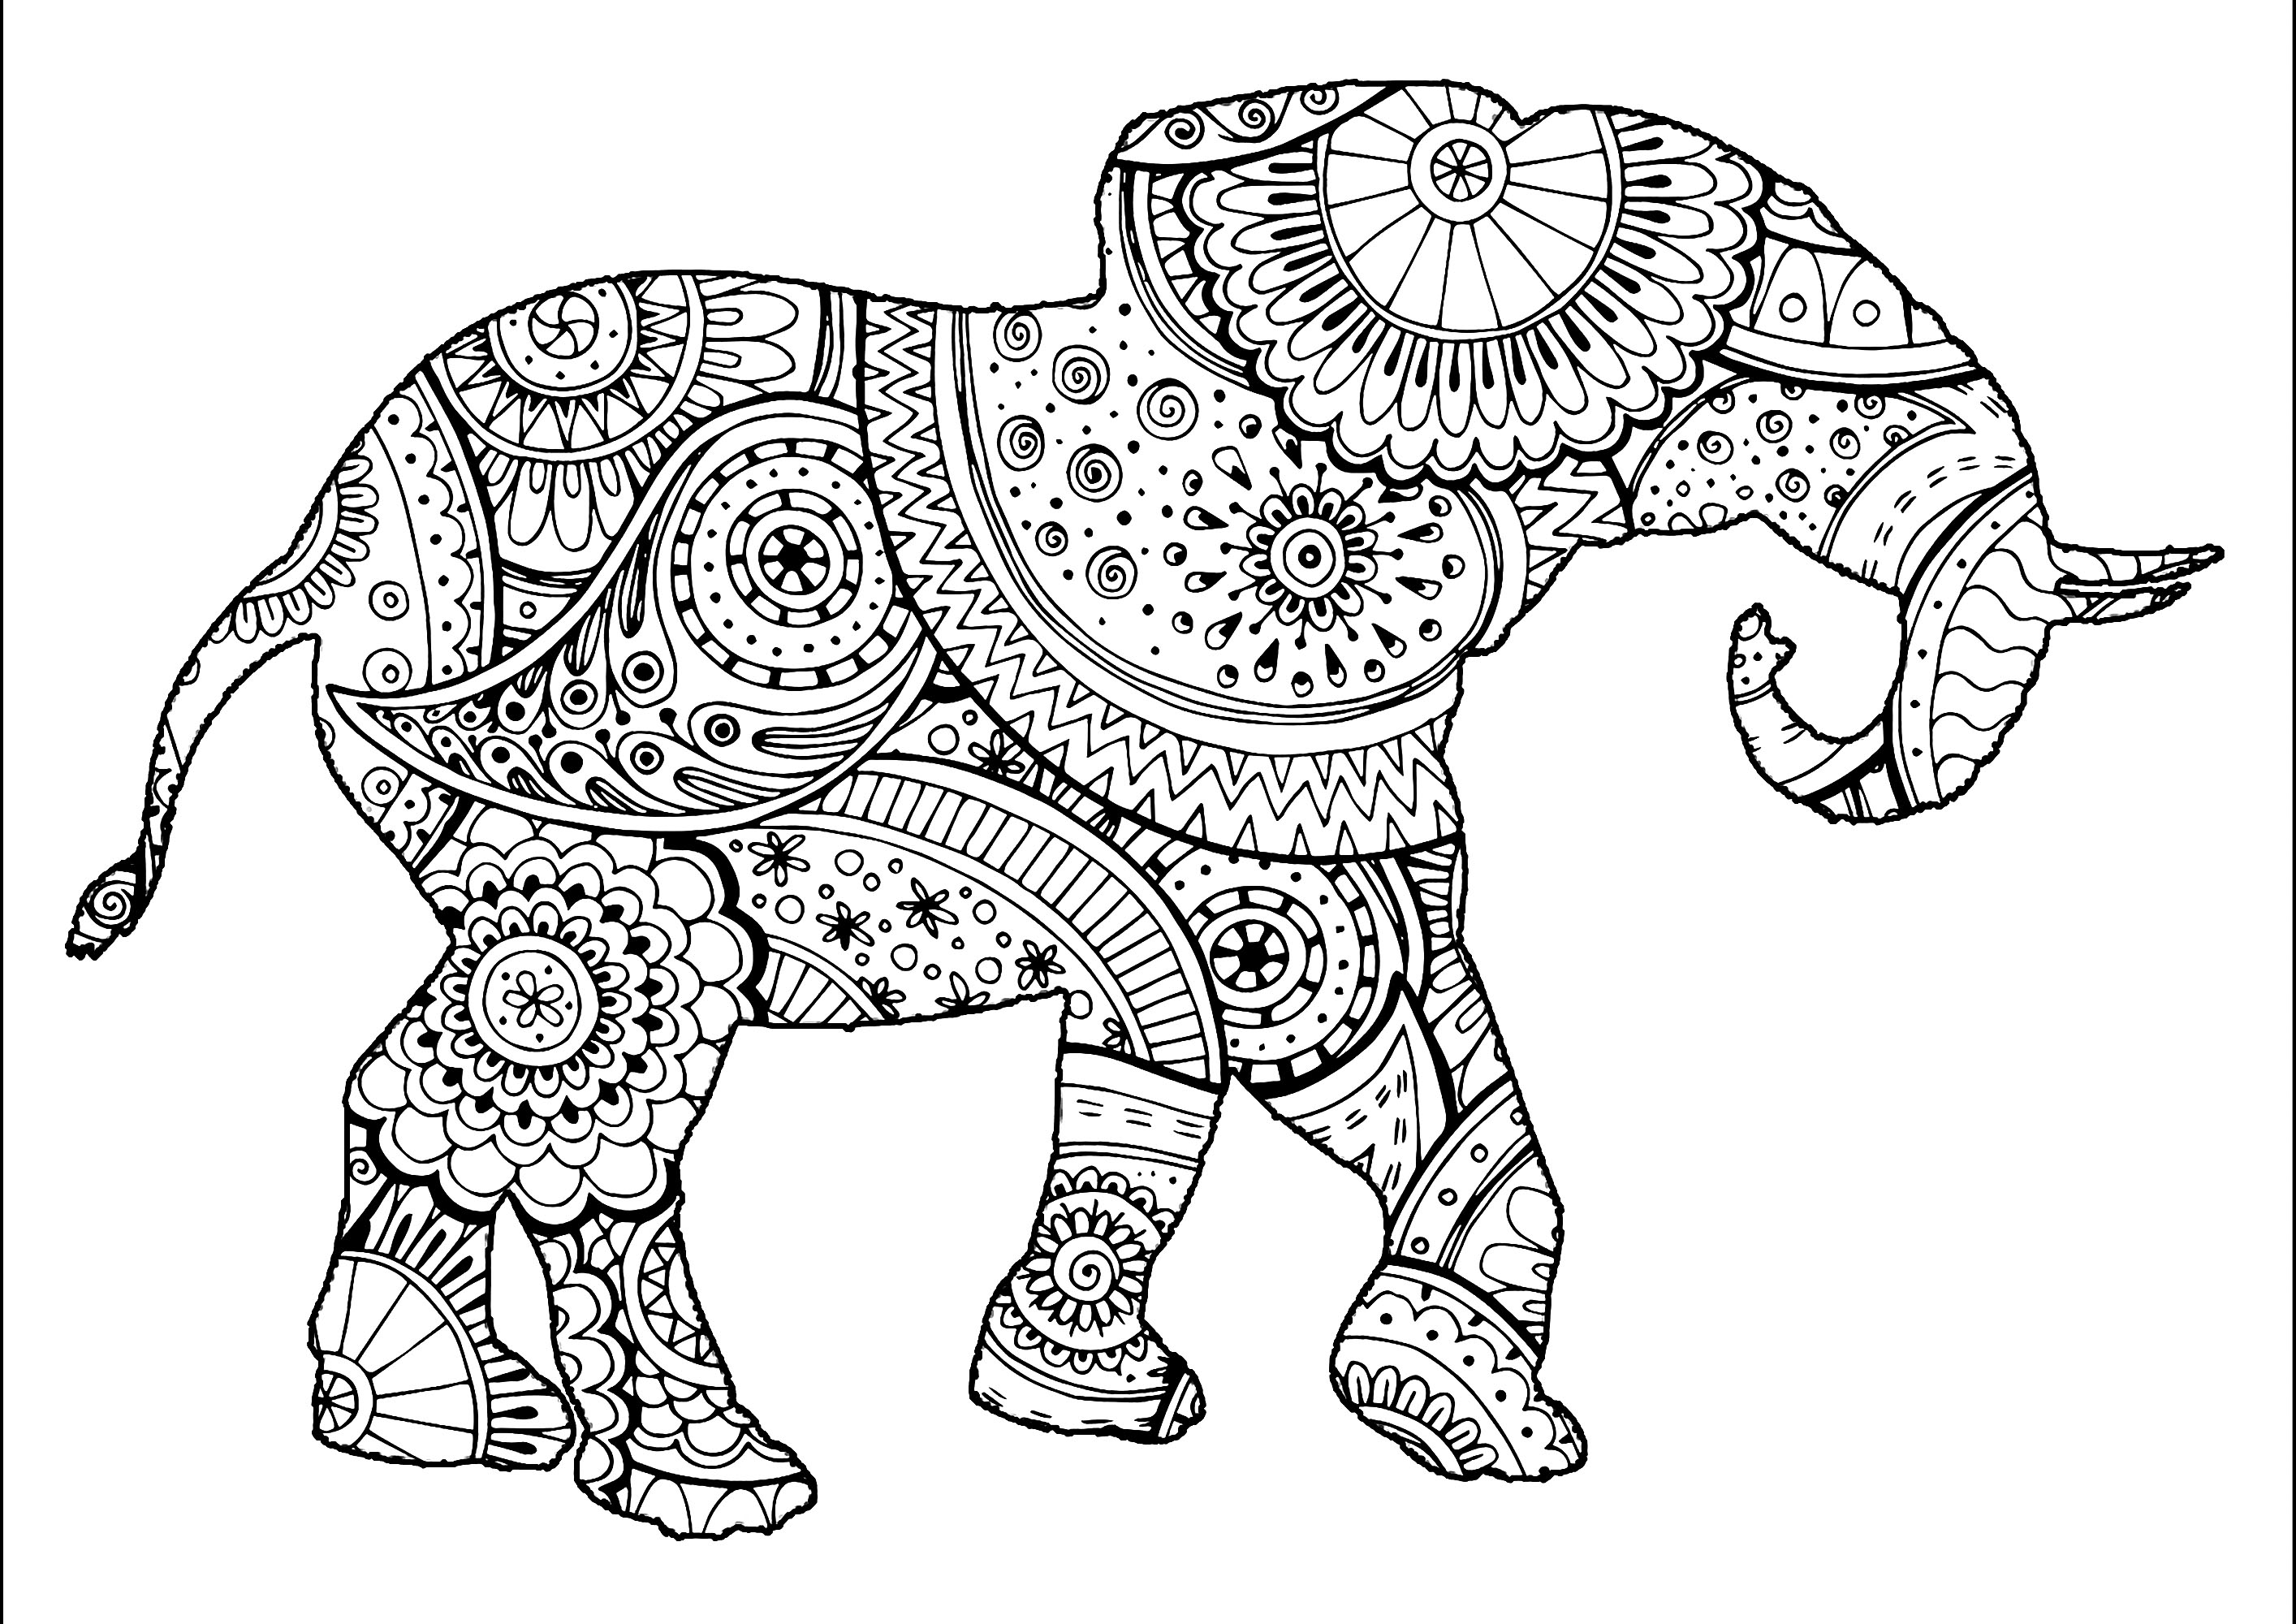 printable elephant coloring pages free printable elephant coloring pages for kids coloring pages printable elephant